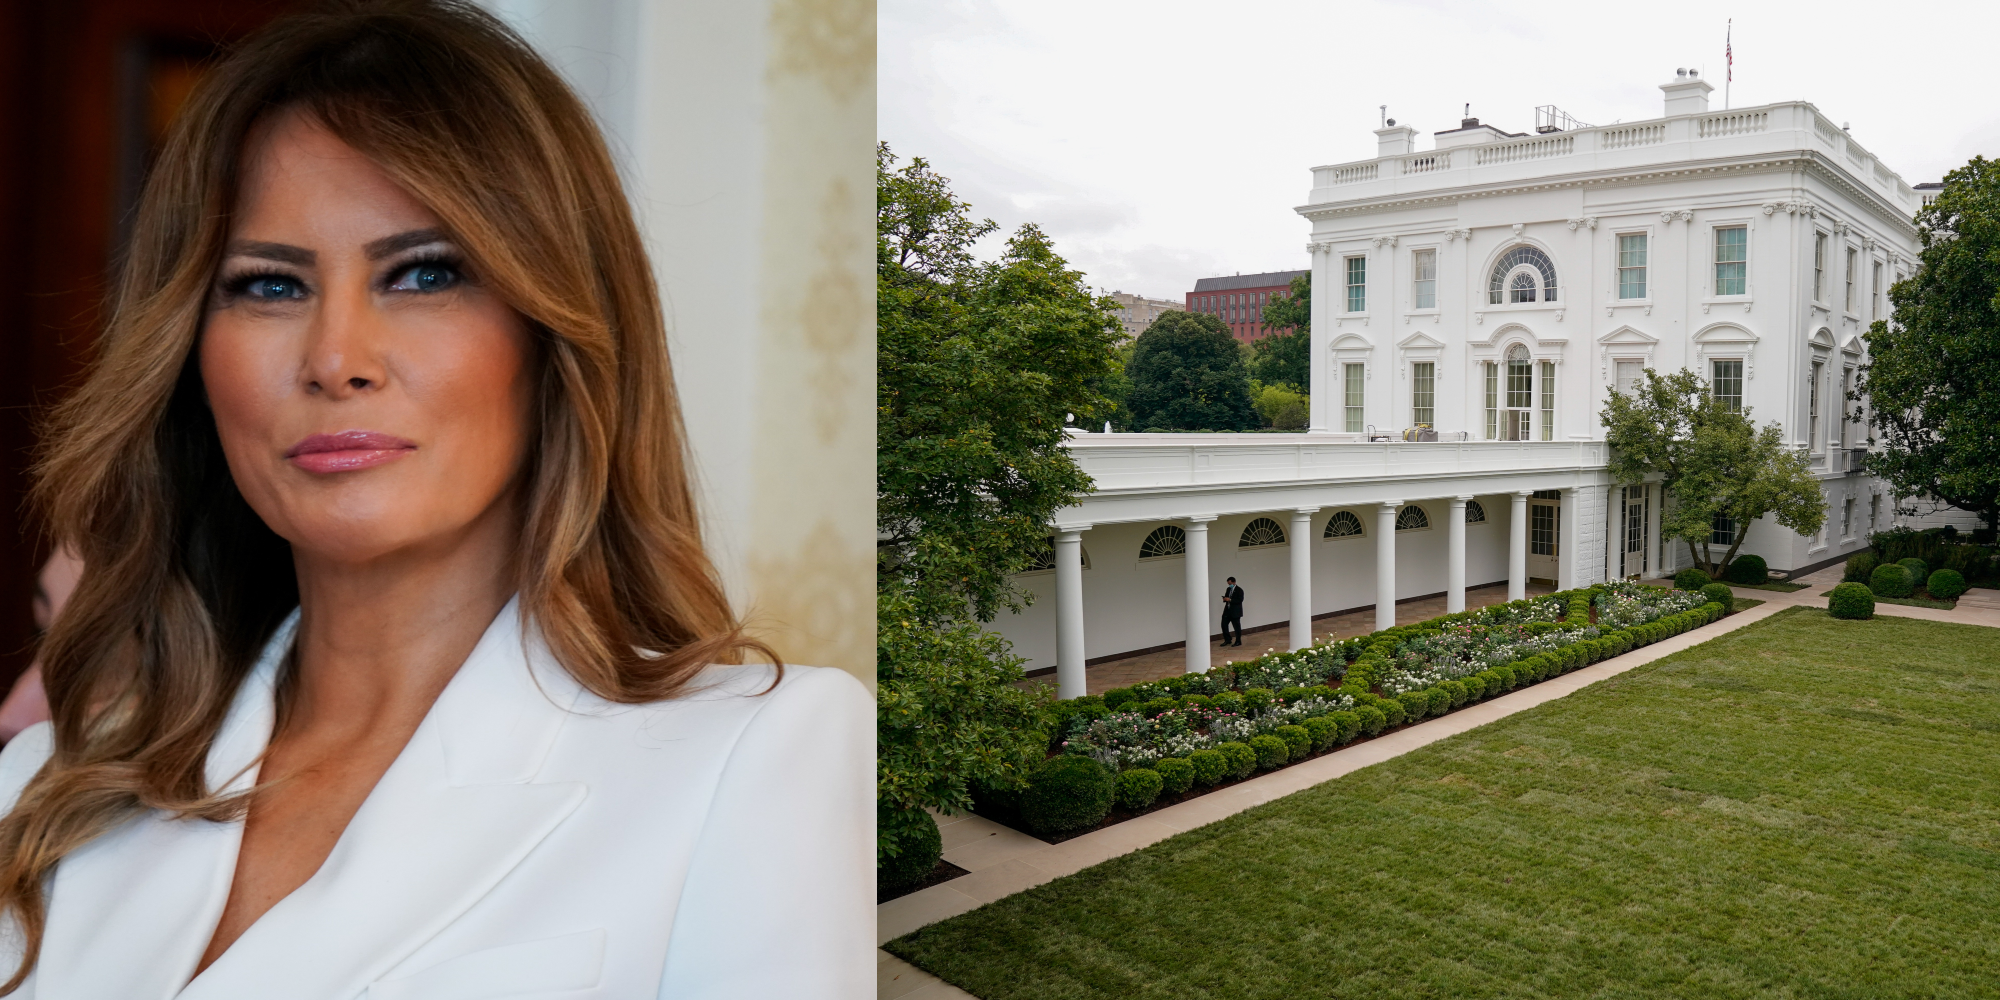 Melania Trump How The Internet Reacted To The Redesign Of The White House Rose Garden Indy100 Indy100